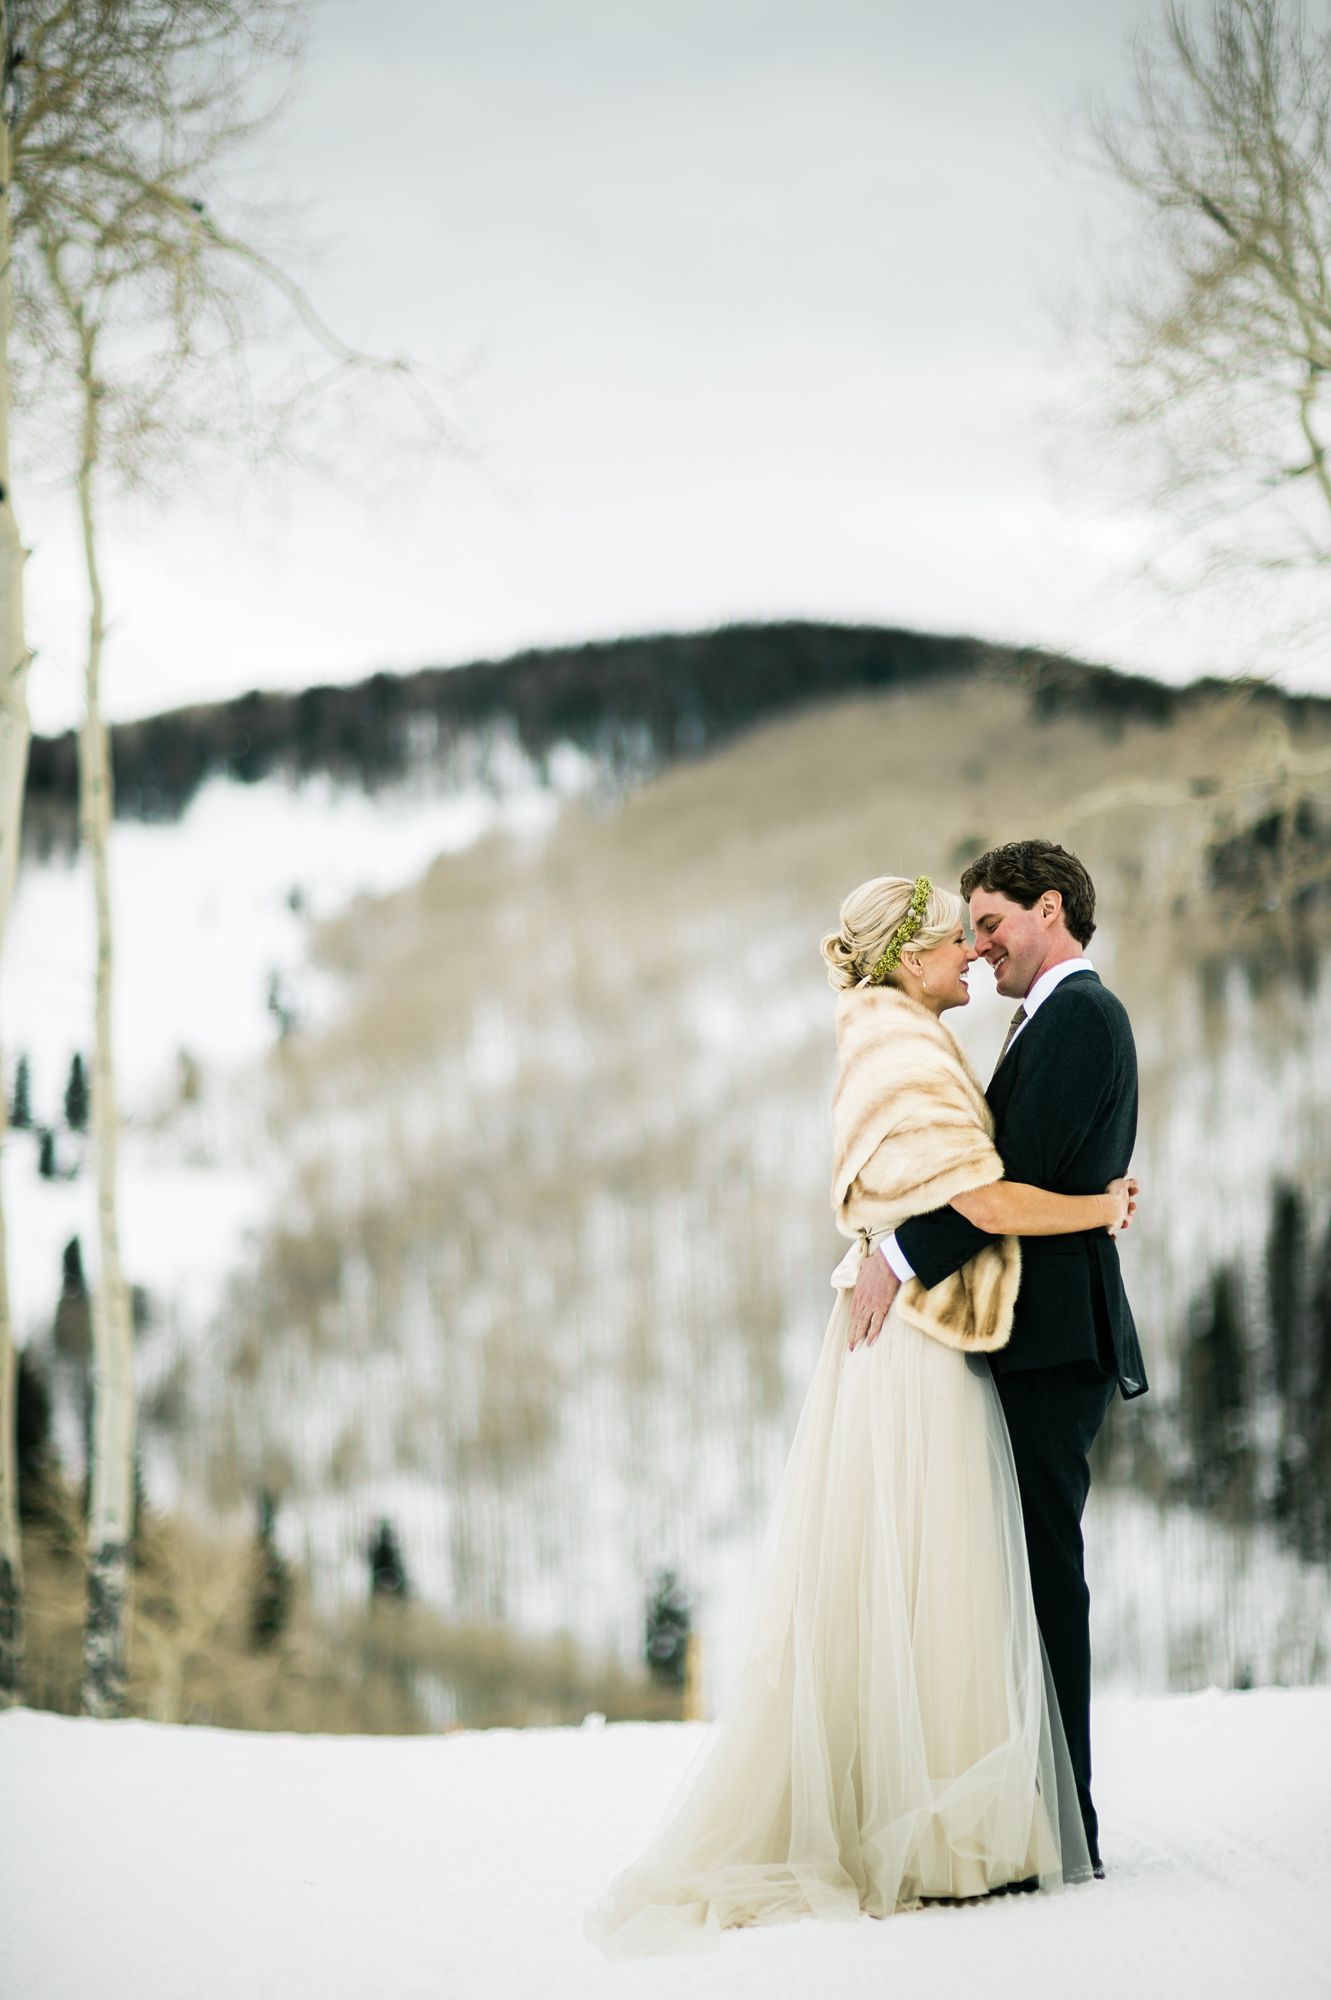 A Gold Winter Wedding At Trappers Cabin In Beaver Creek Colorado Great Example Of An Intimate CO